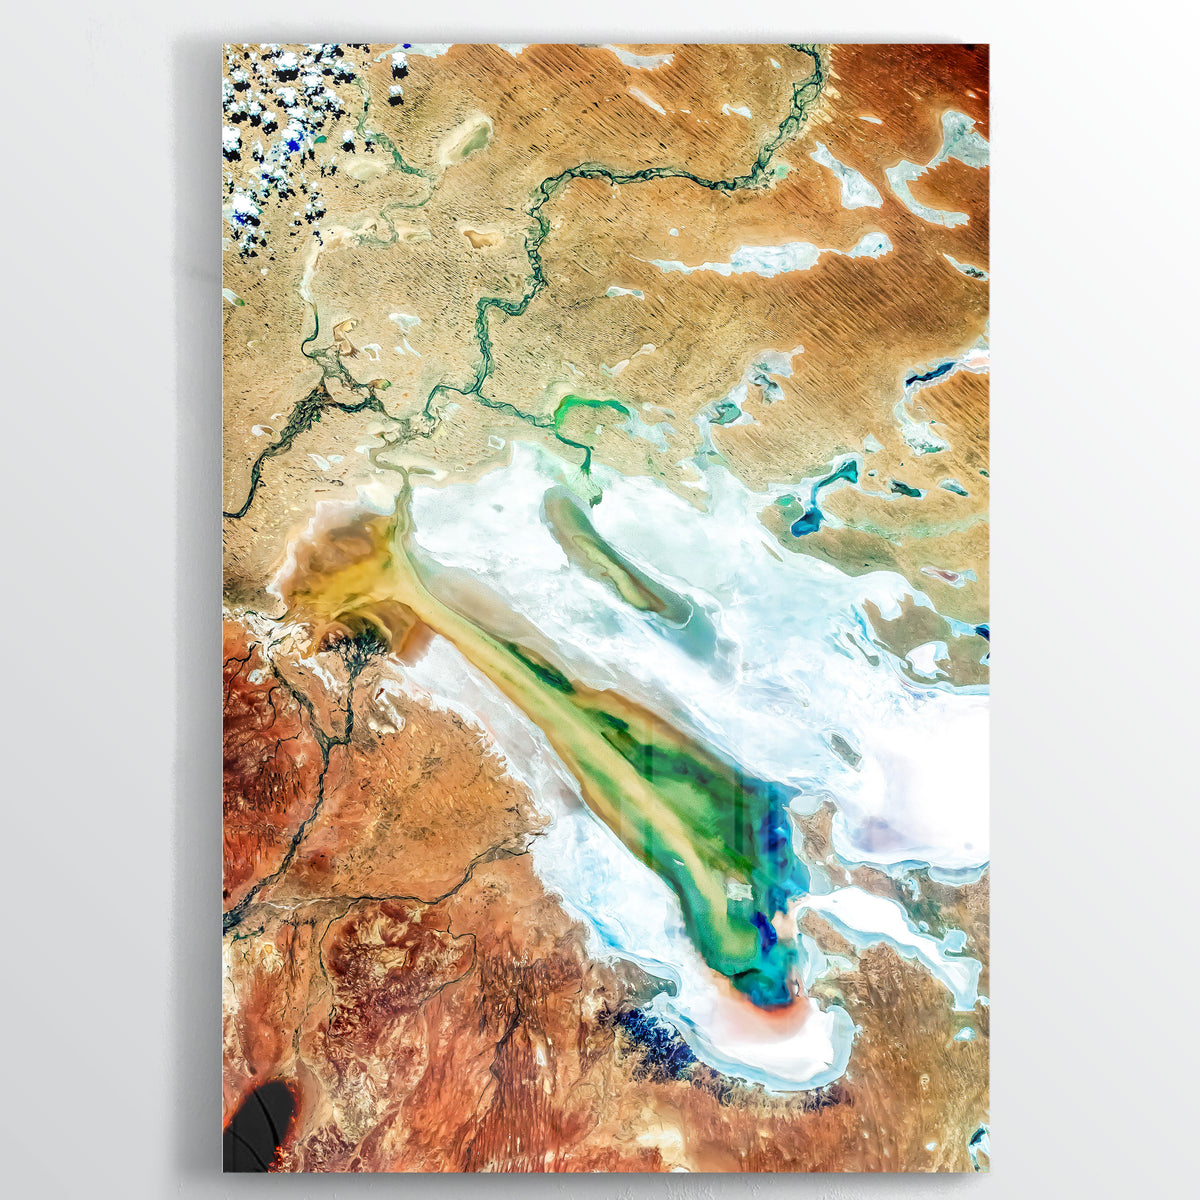 Lake Eyre Earth Photography - Floating Acrylic Art